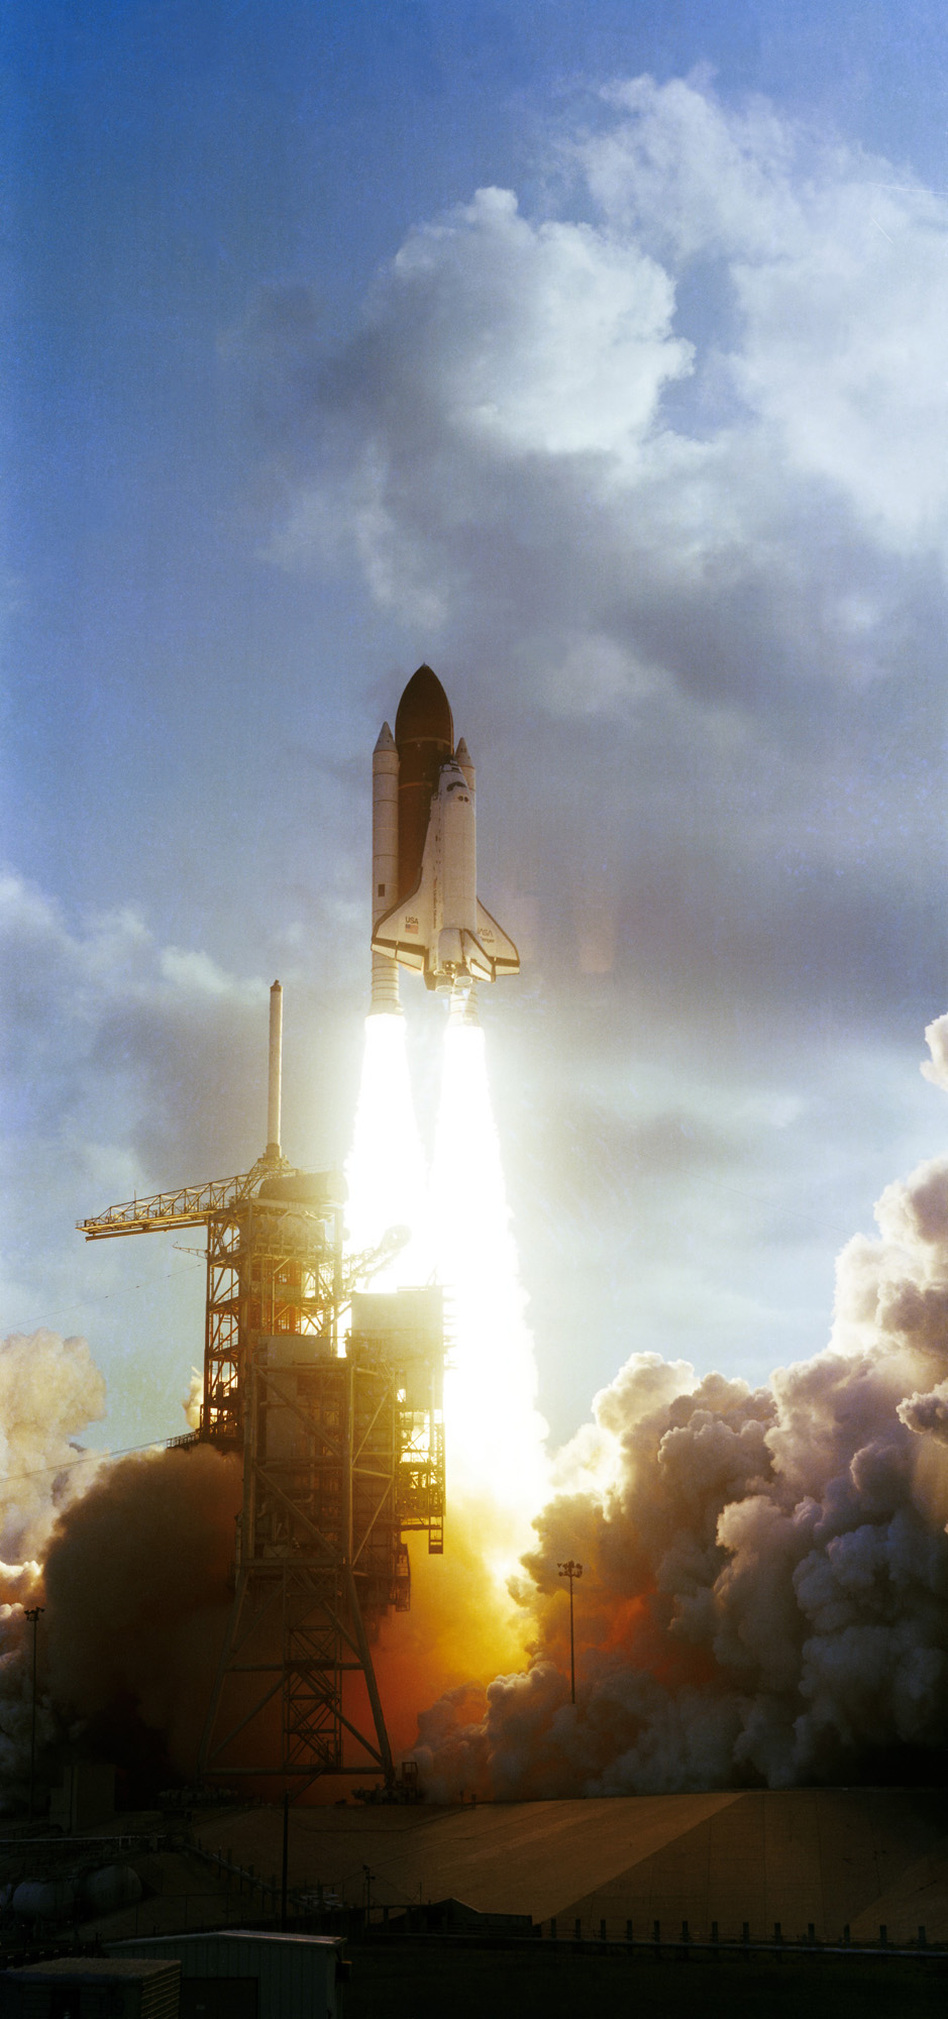 "Ride and her crewmates rocketed into space aboard Challenger at 7:33 a.m. Eastern Time on June 18, 1983. Ride later described the launch as ""exhilarating, terrifying and overwhelming all at the same time."" (NASA)"